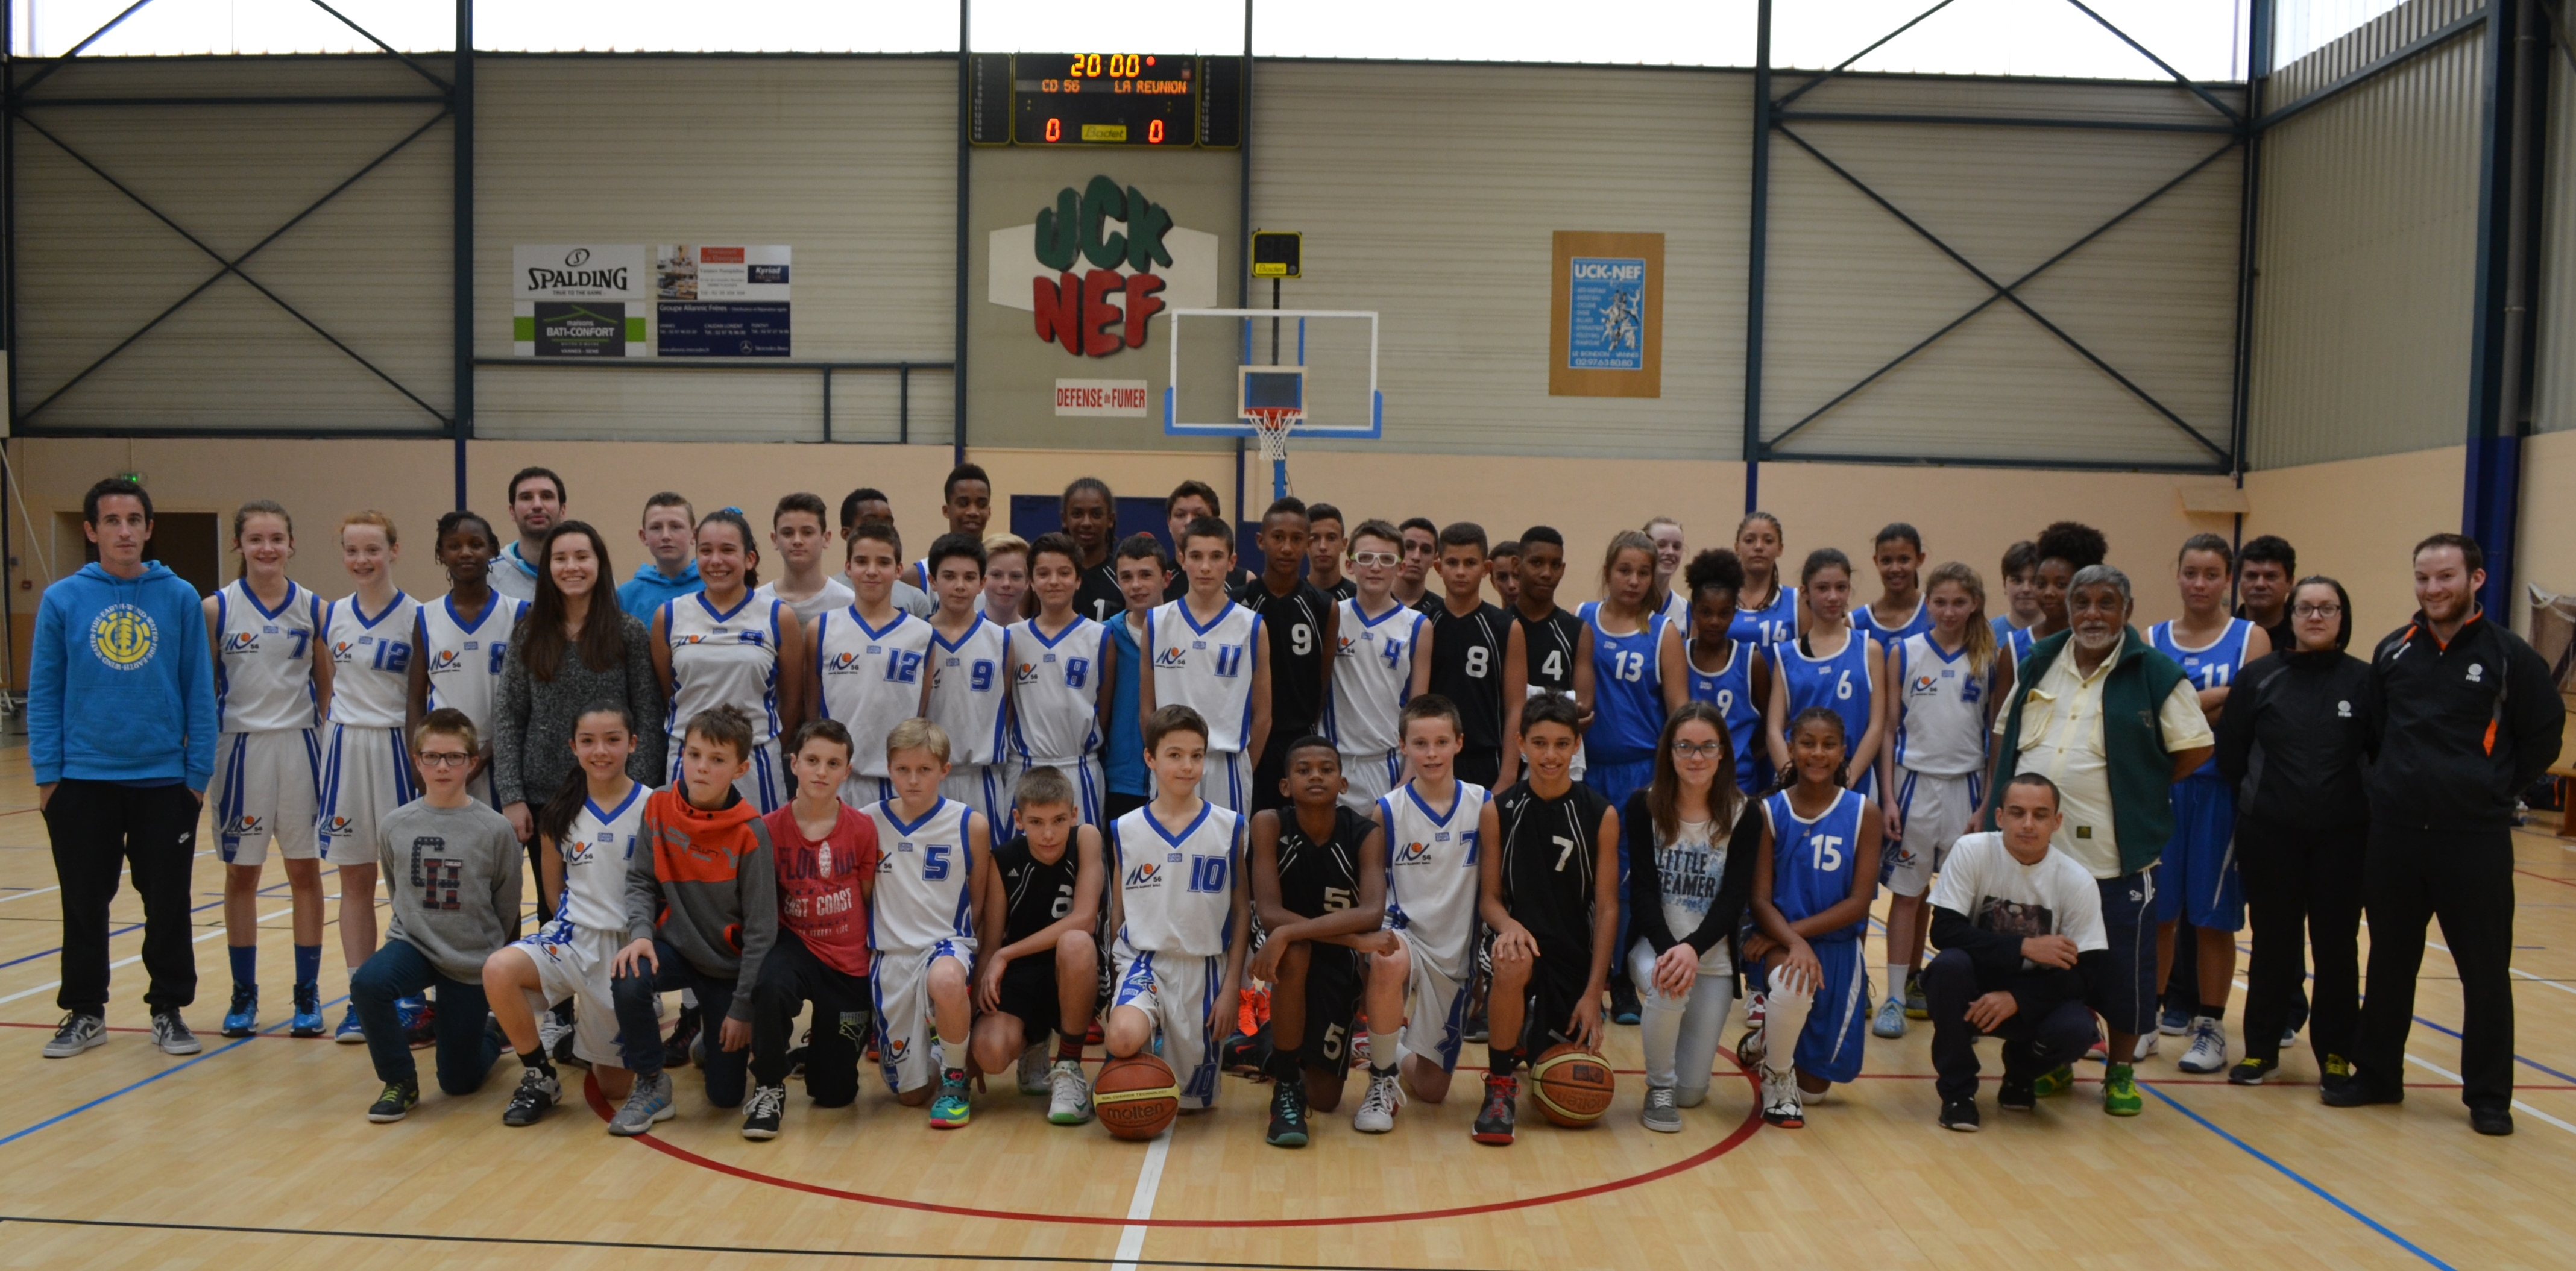 ffbb rencontres Fort-de-France